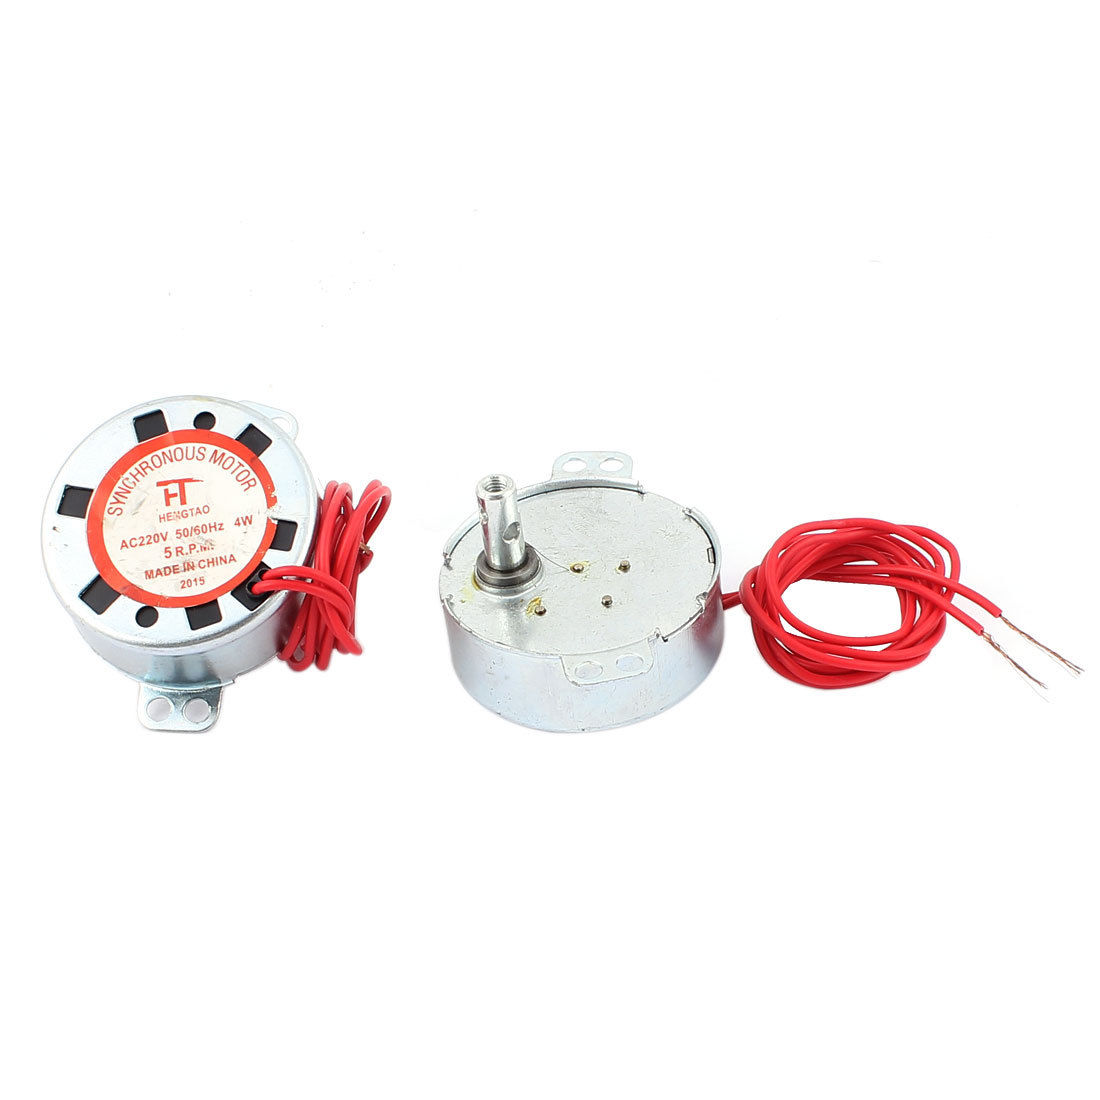 60hz 5rpm 2 Wires Microwave Oven Synchronous Motor Brass Tone